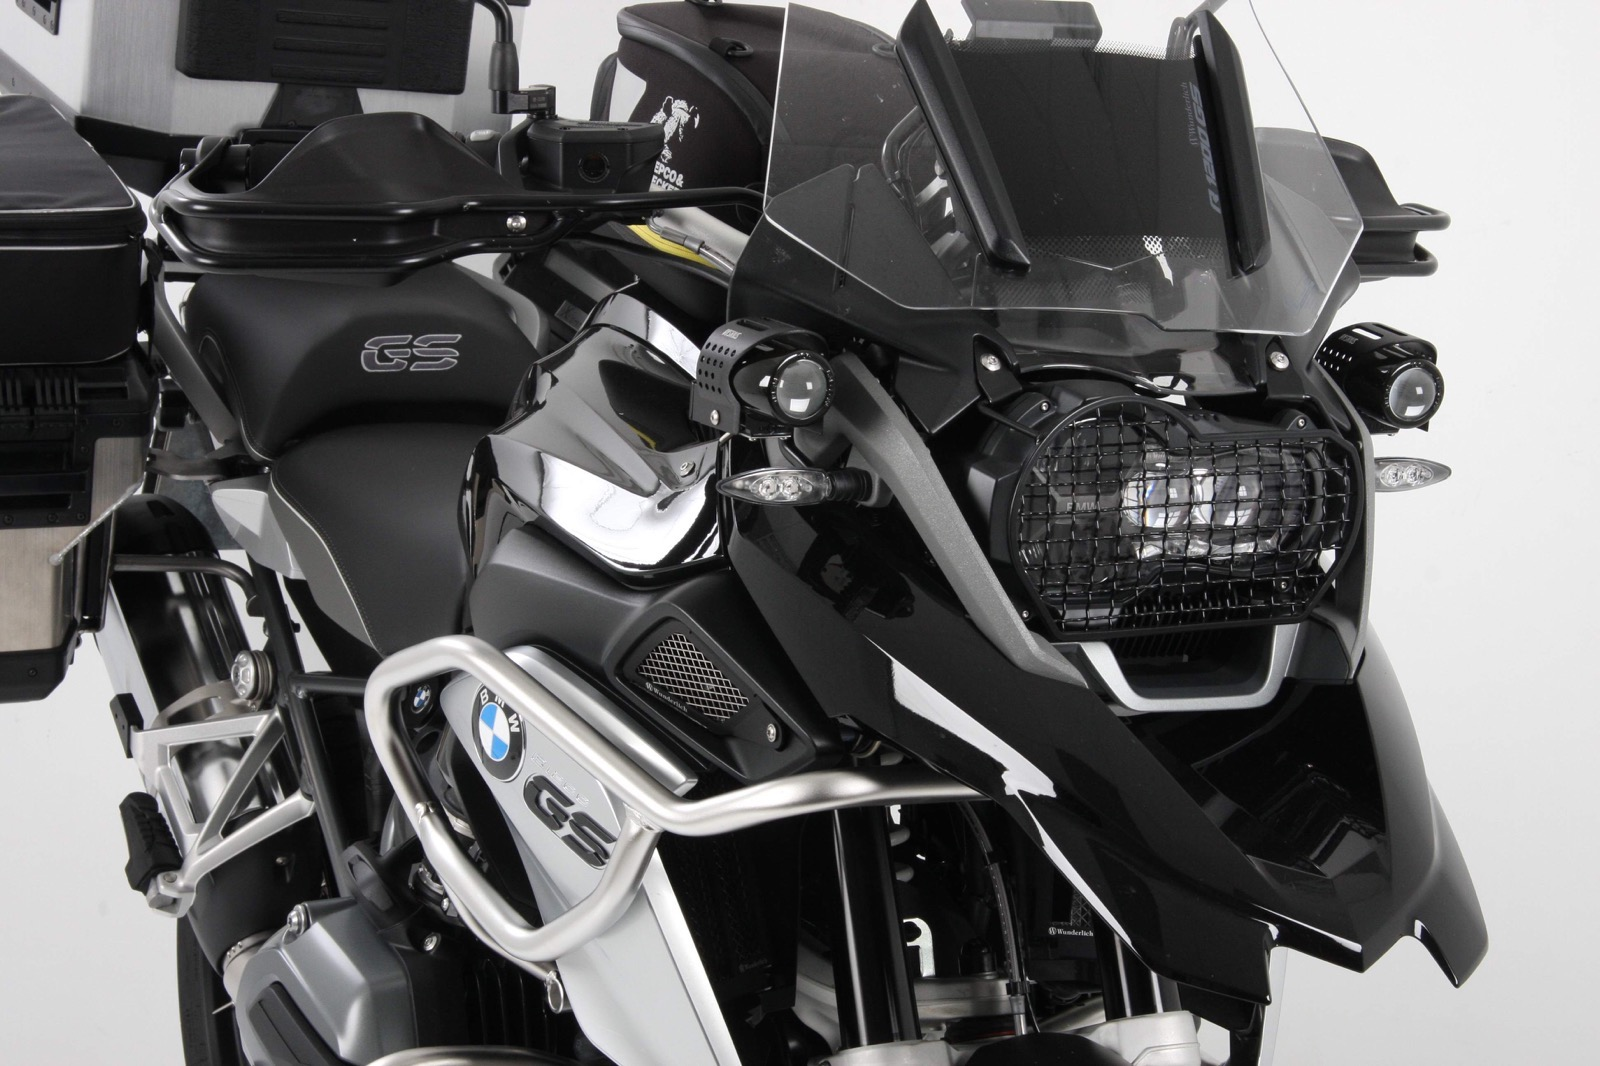 Online Motorcycle Accessories Business for Sale $299,000 + SAV